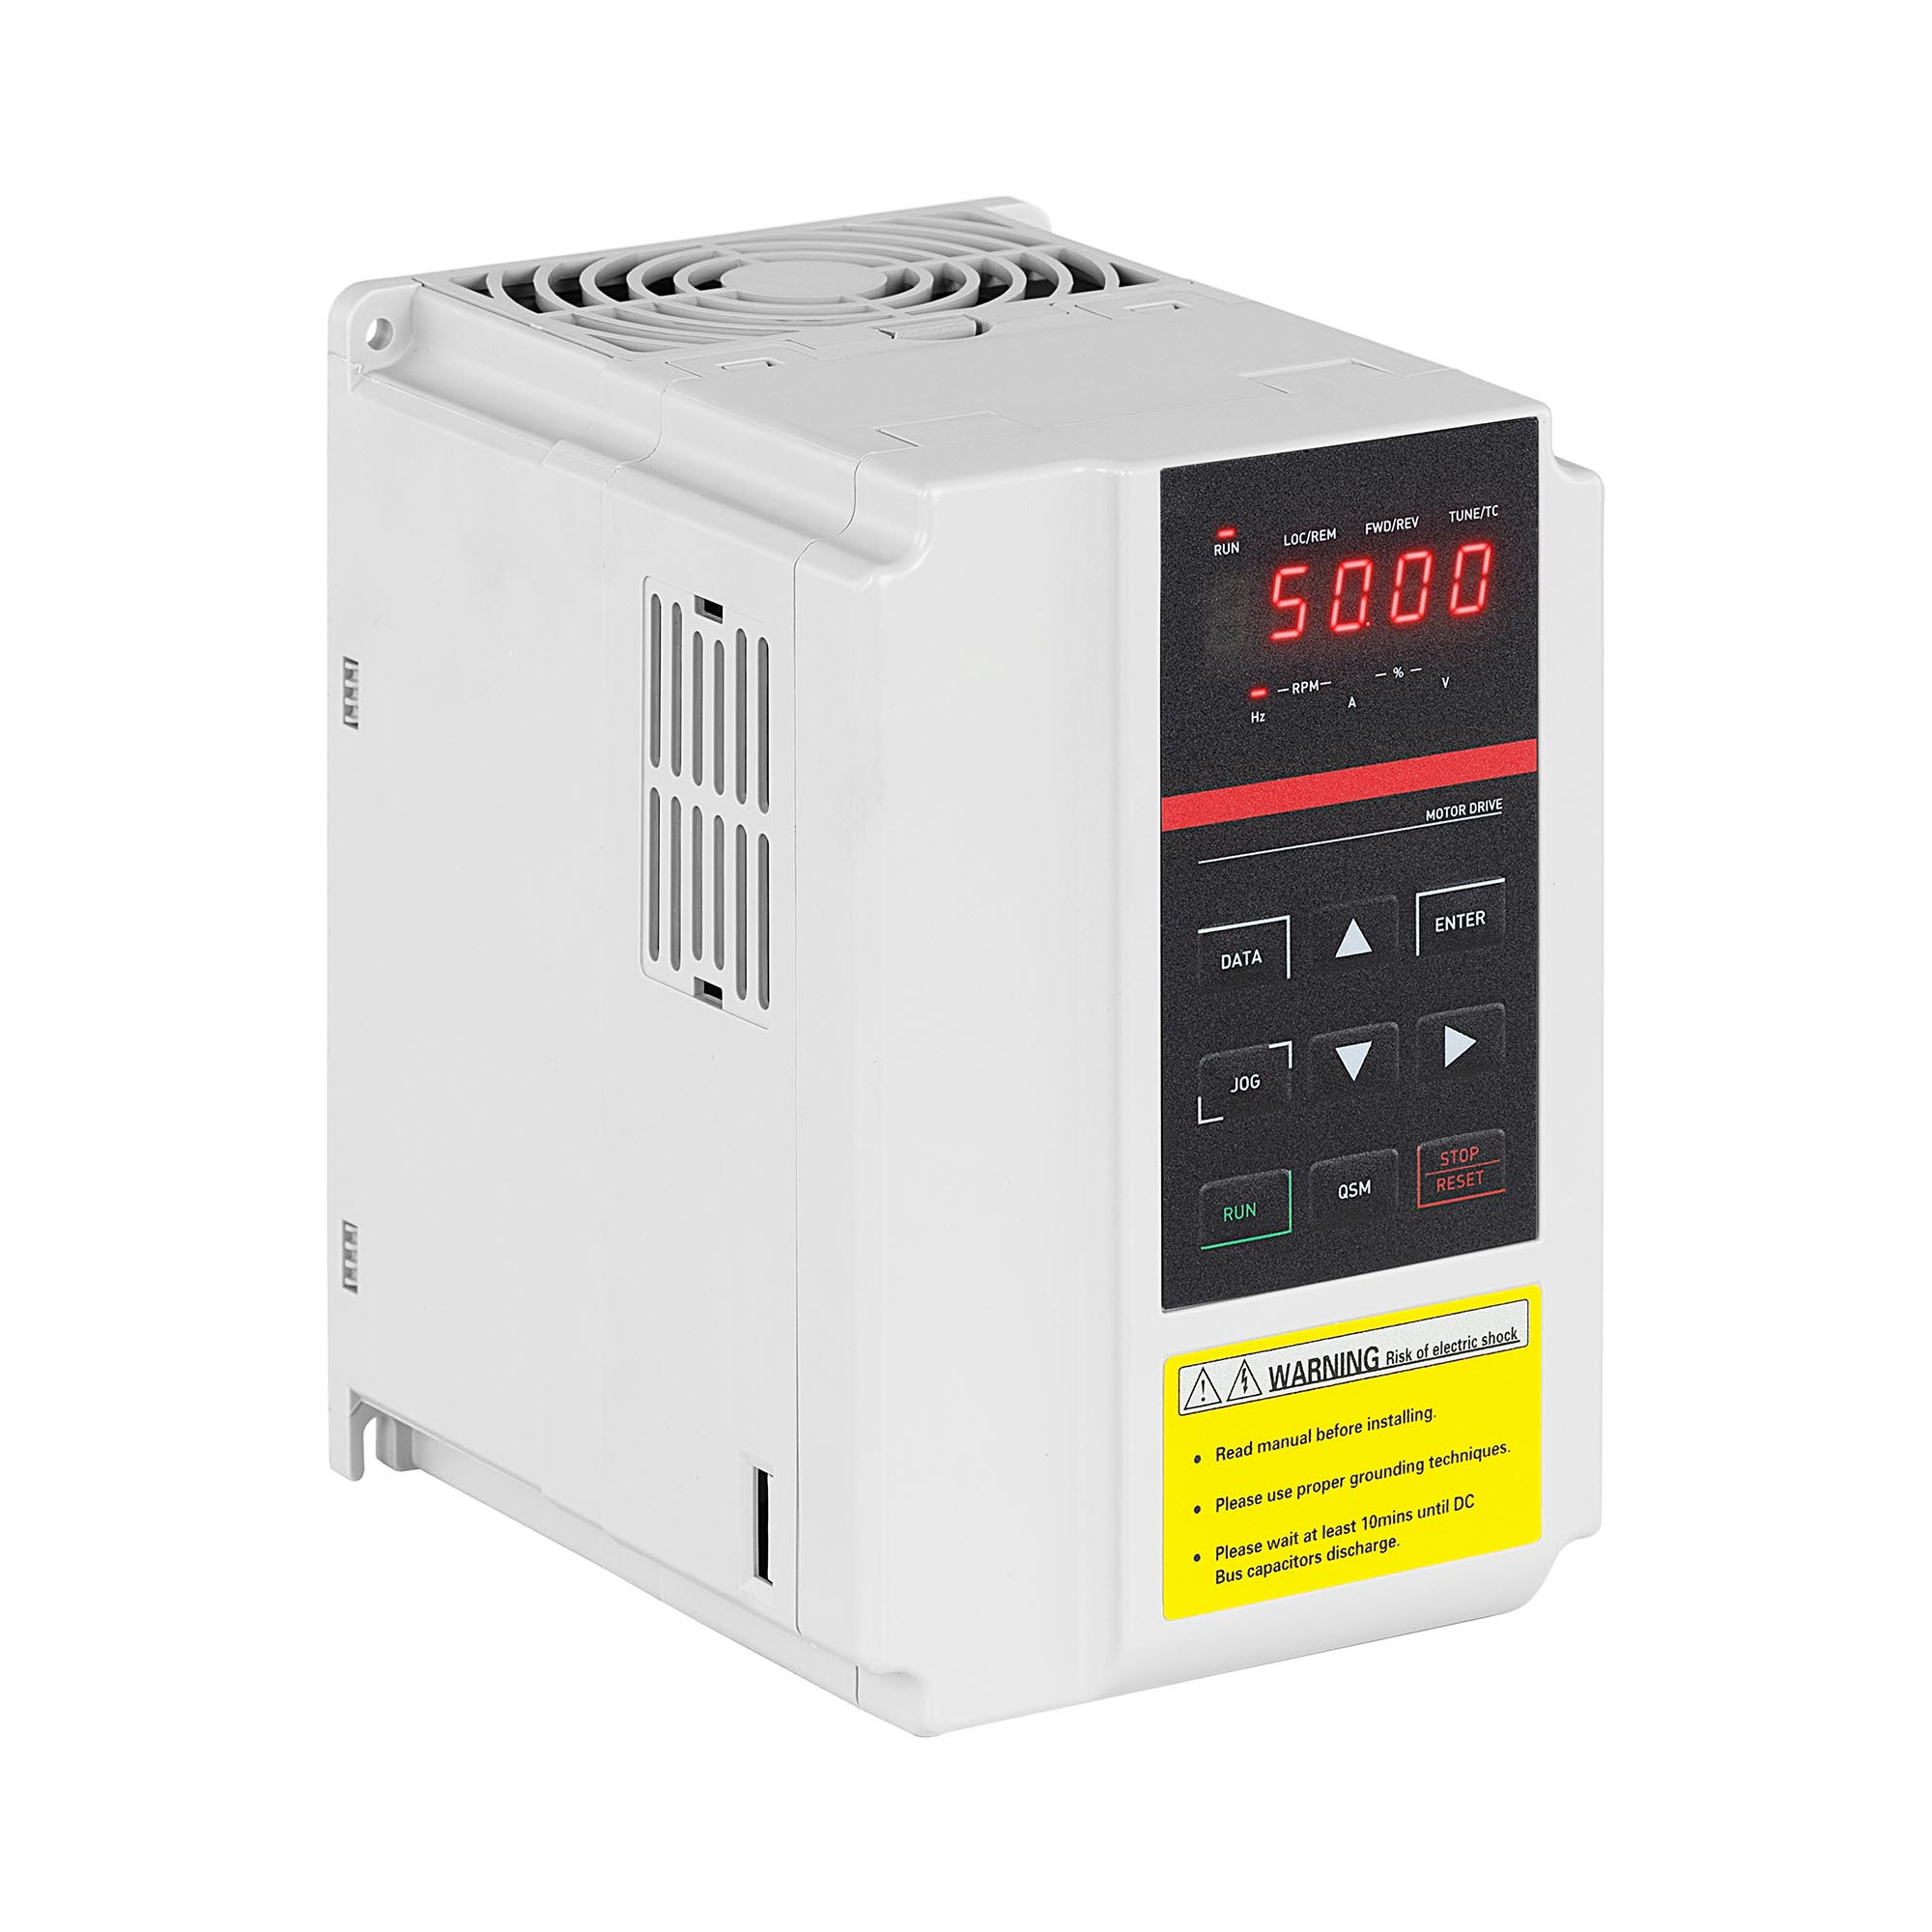 MSW Frequenzumrichter - 2,2 KW / 3 PS - 380 V - 50 - 60 Hz - LED MSW-FI-2200